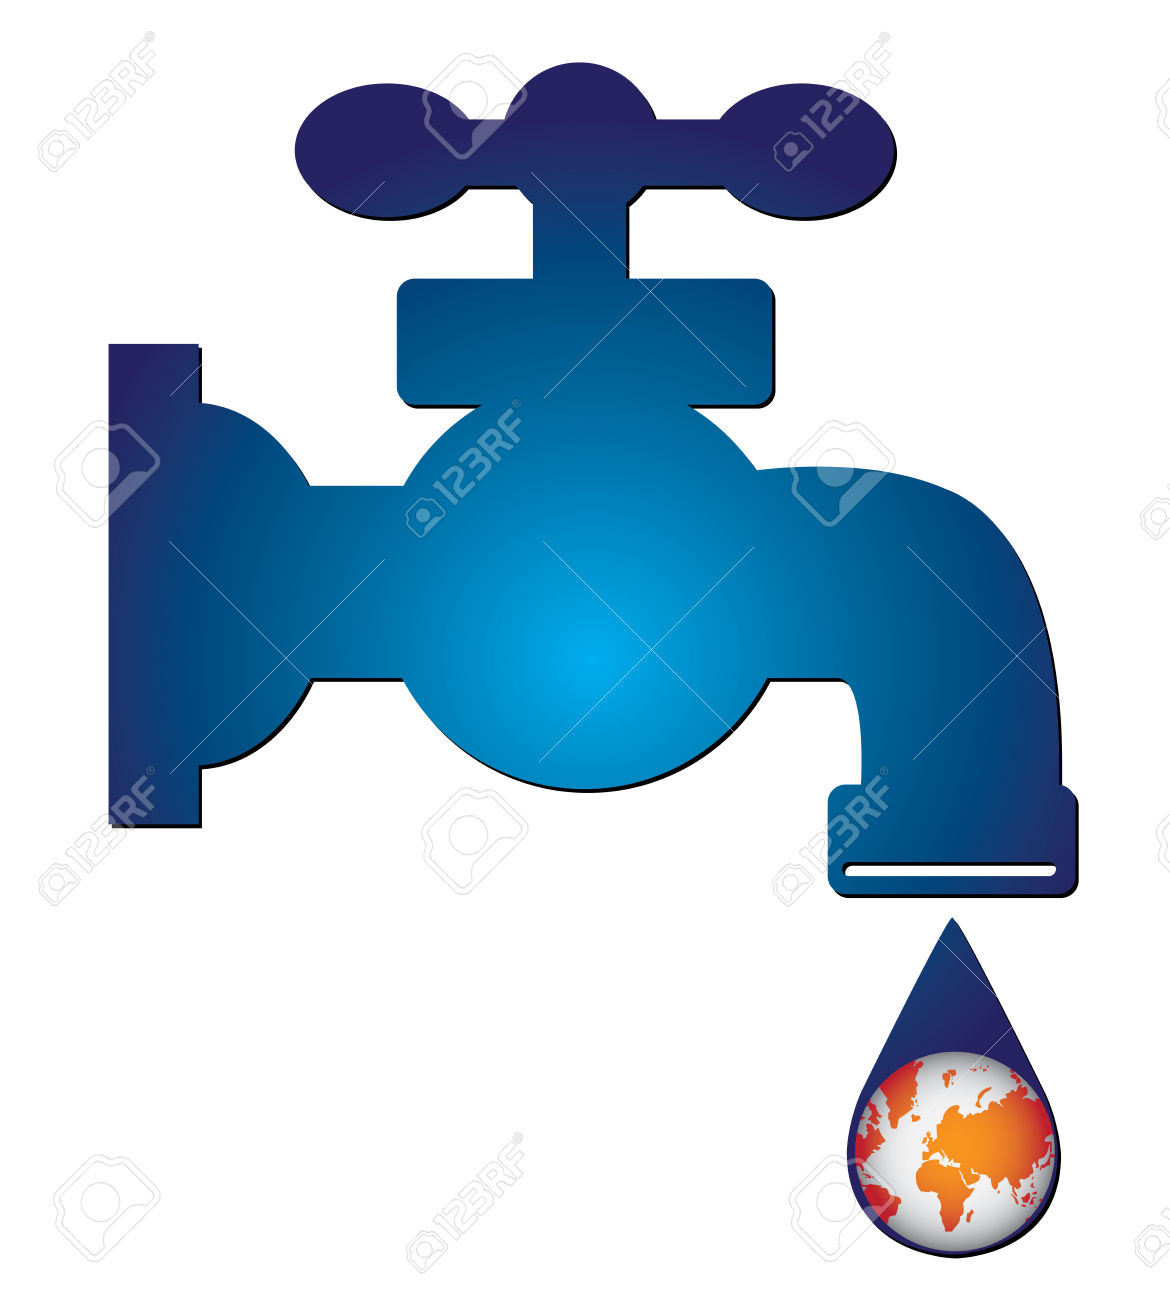 Conserve Water Stock Photos Images. Royalty Free Conserve Water.